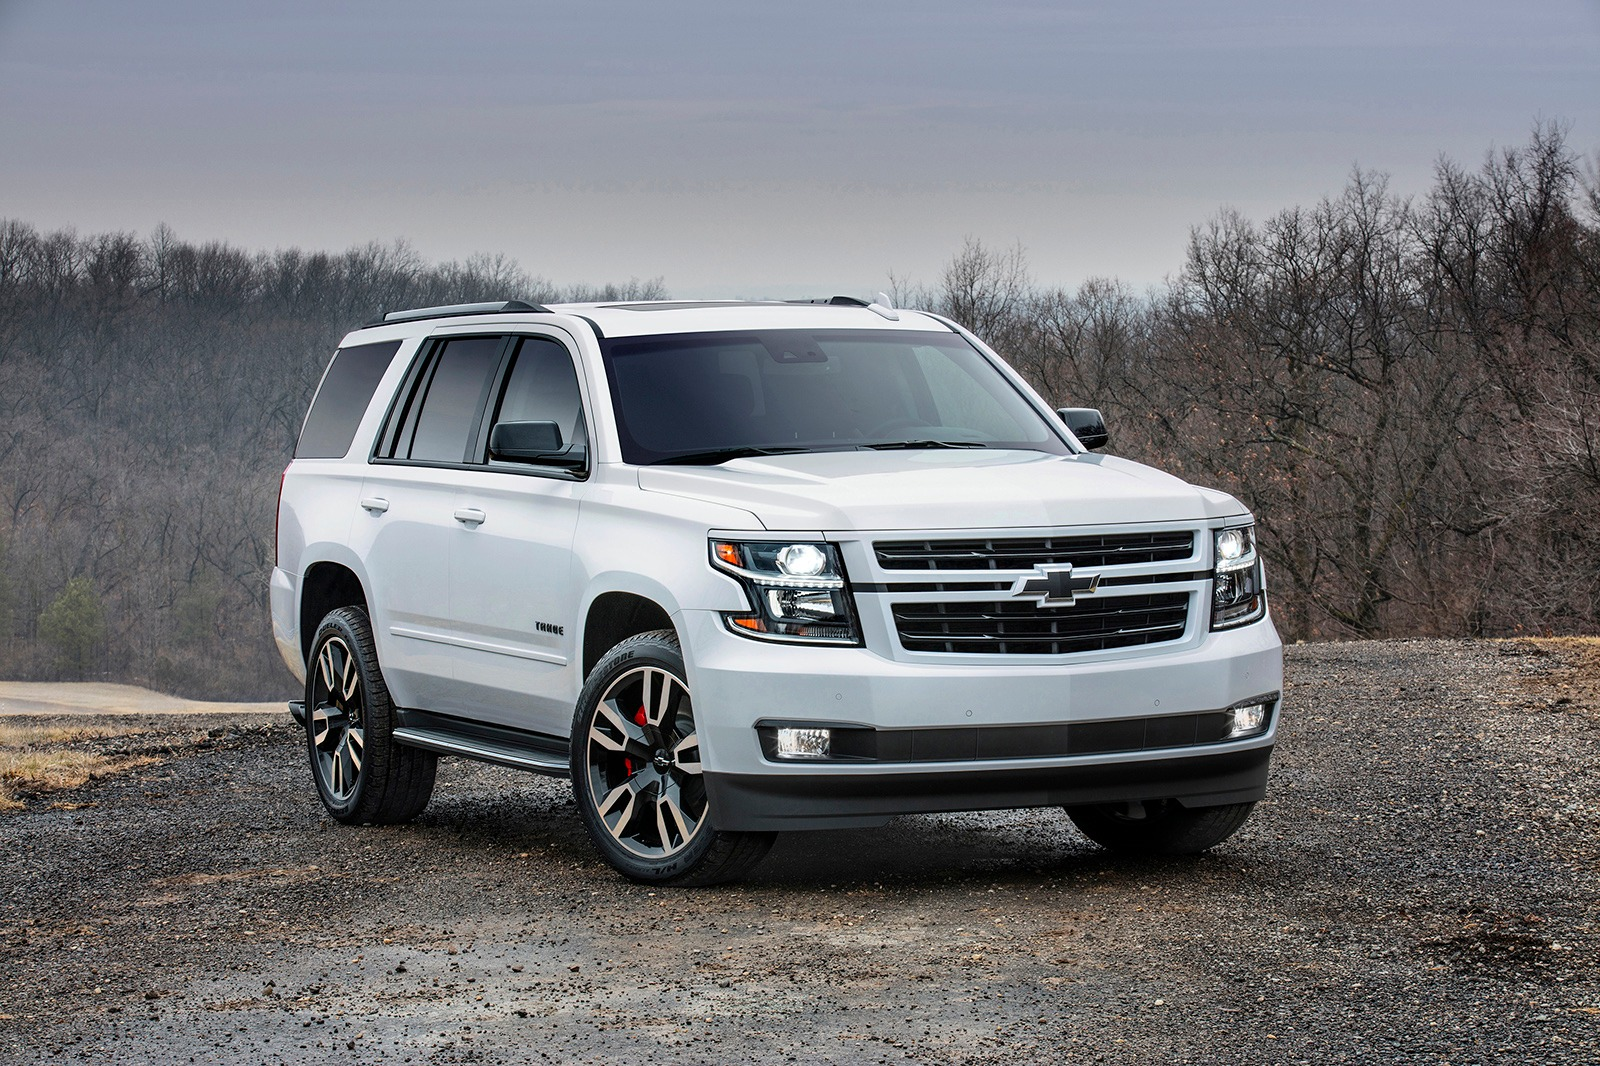 32 The Best 2019 Chevy Tahoe Release Date and Concept